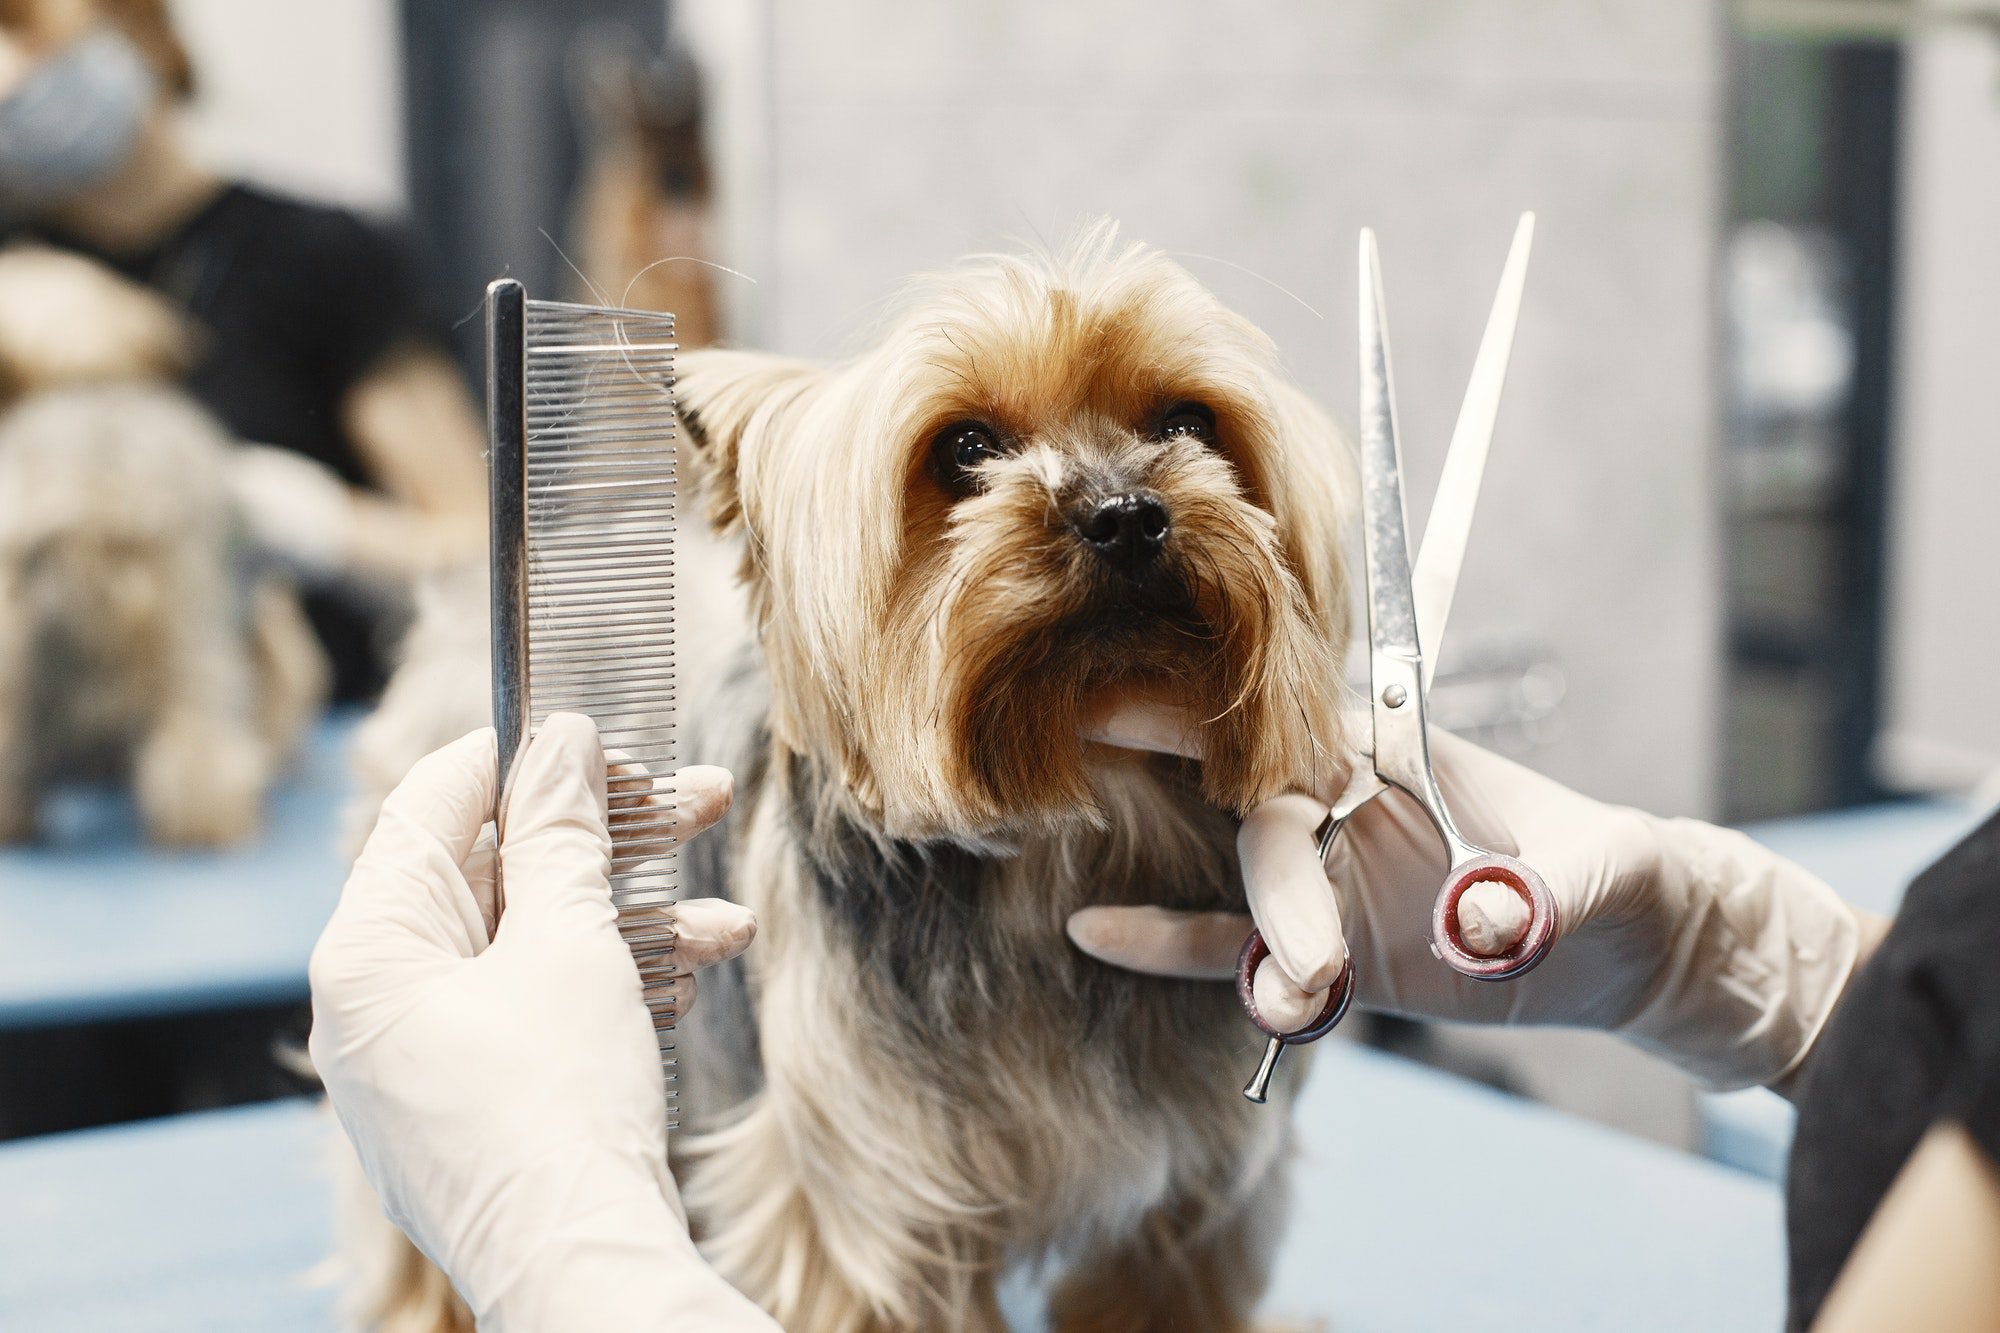 Haircut for dog breed Yorkshire Terrier